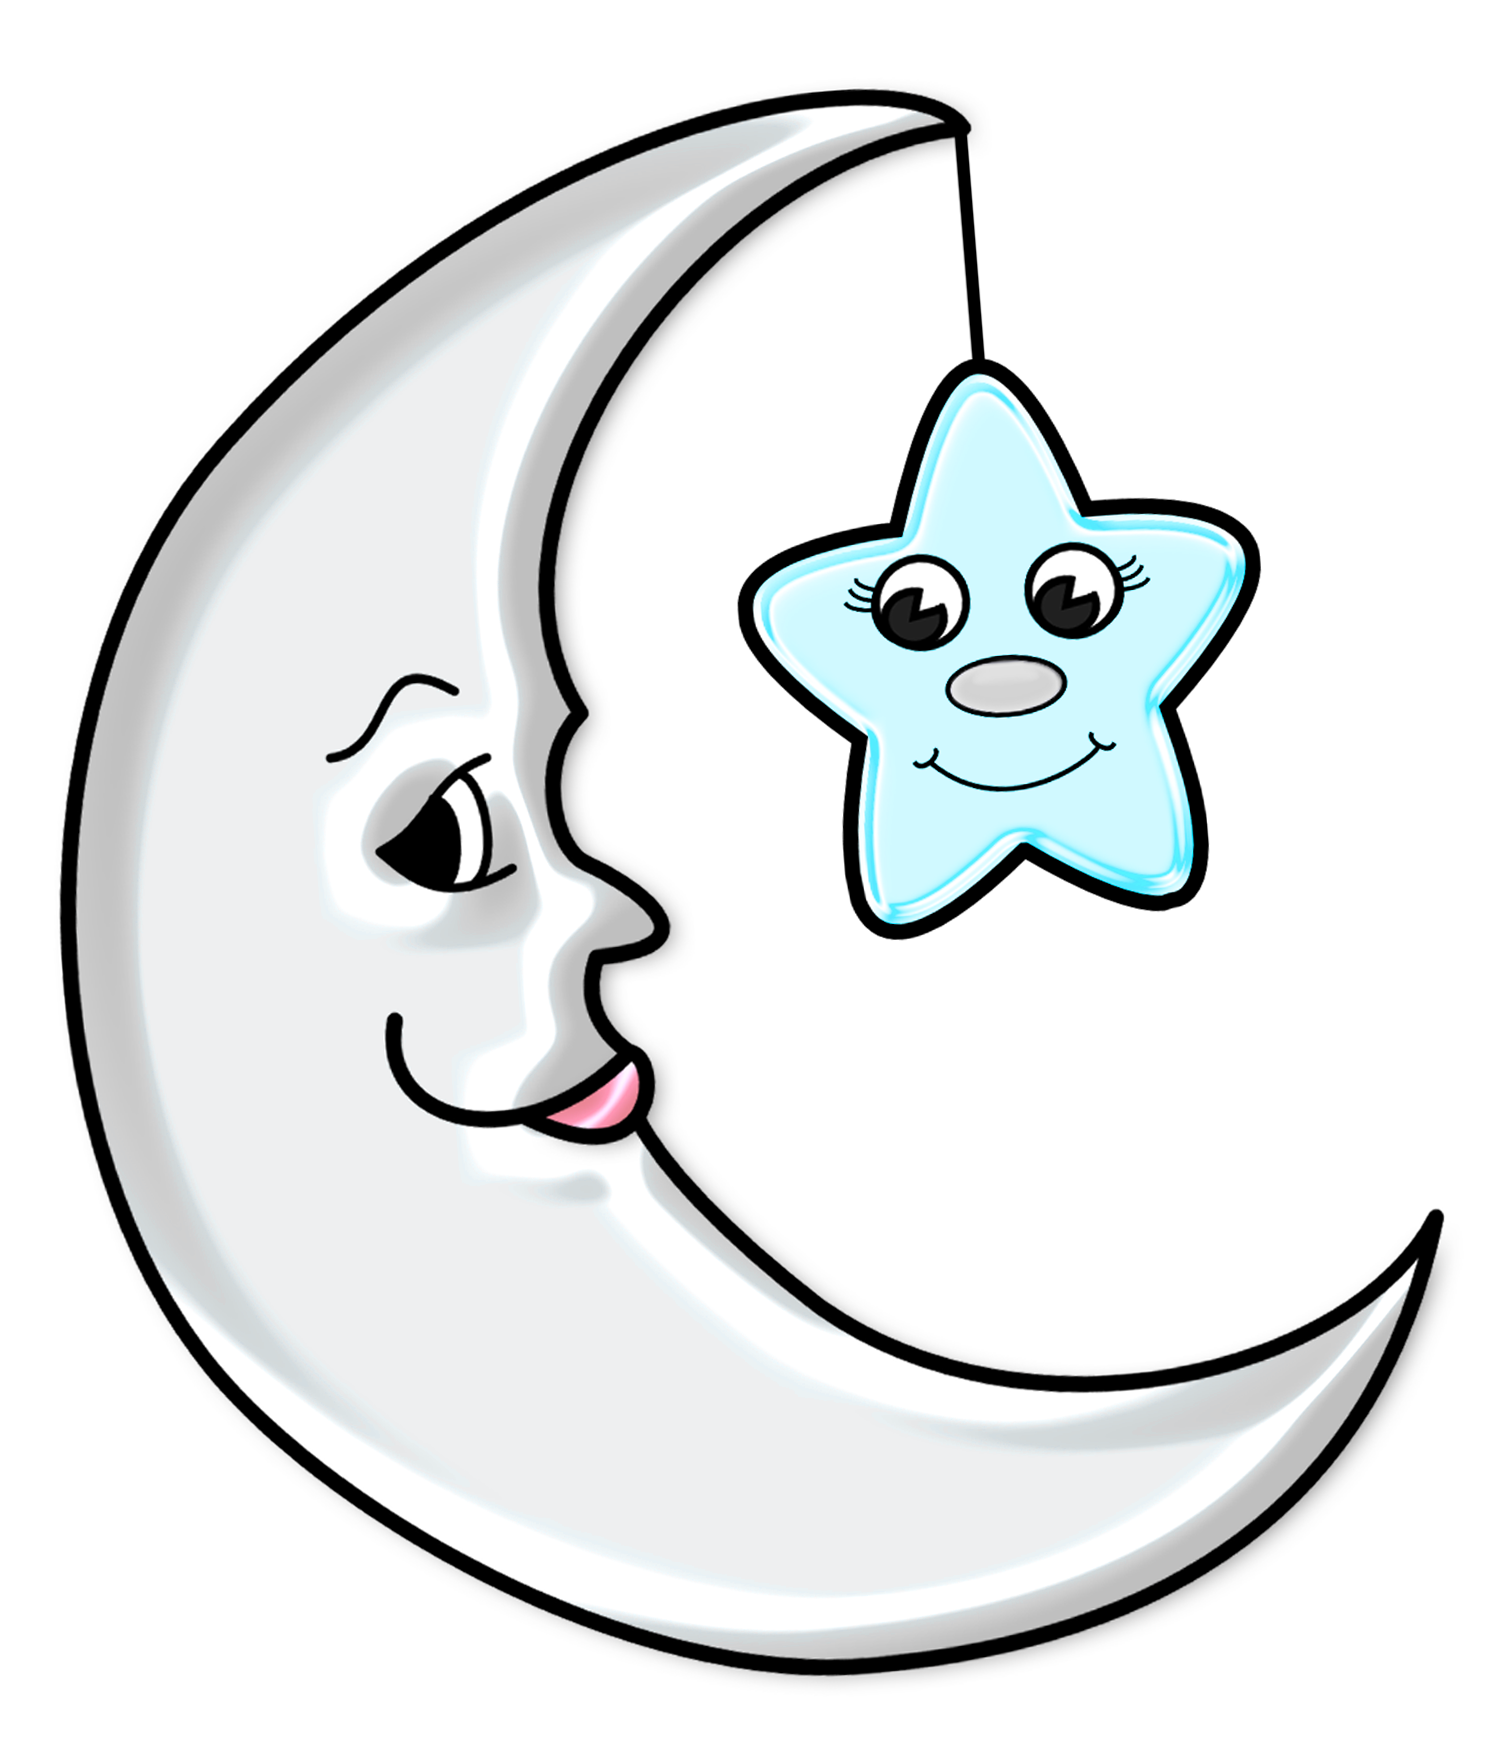 Clipart rocket transparent background. Cute moon with star